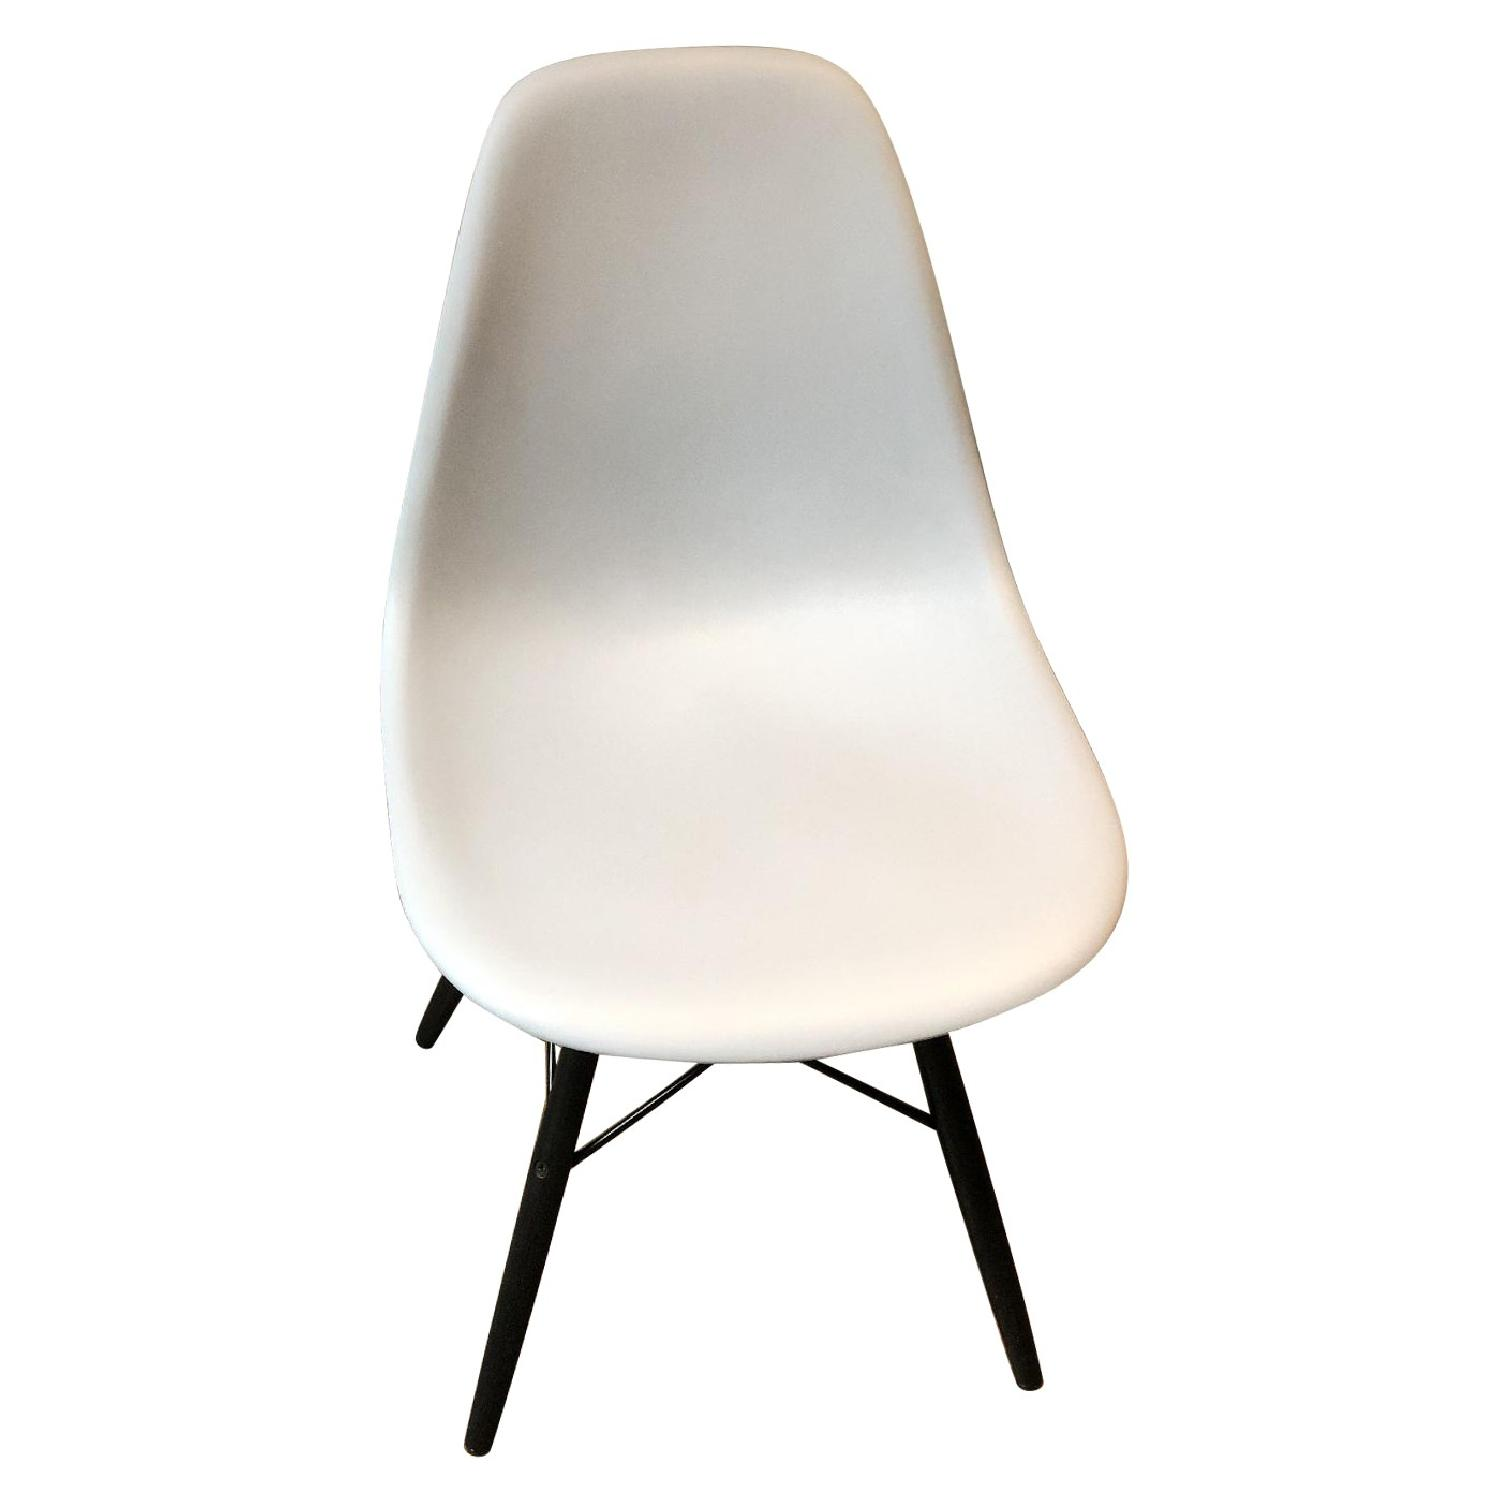 Eames Molded Plastic DSW Dowel-Leg Side Chair - image-0